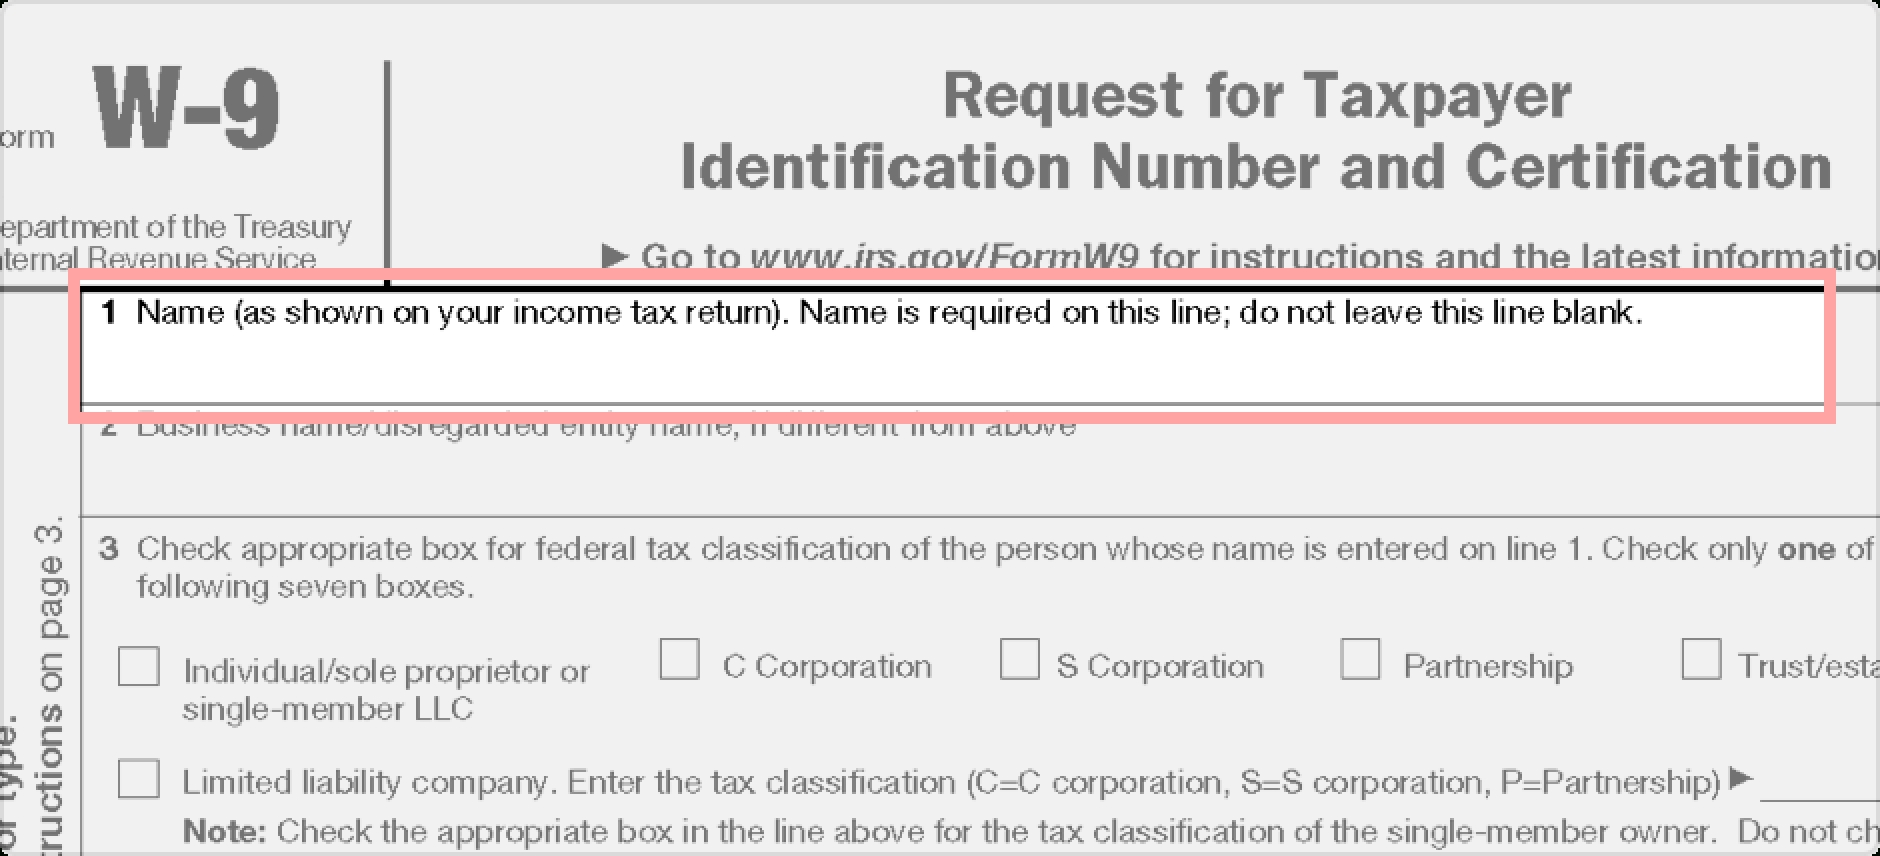 W-9 Form: Fillable, Printable, Download Free. 2020 Instructions-For W 9 2021 Printable